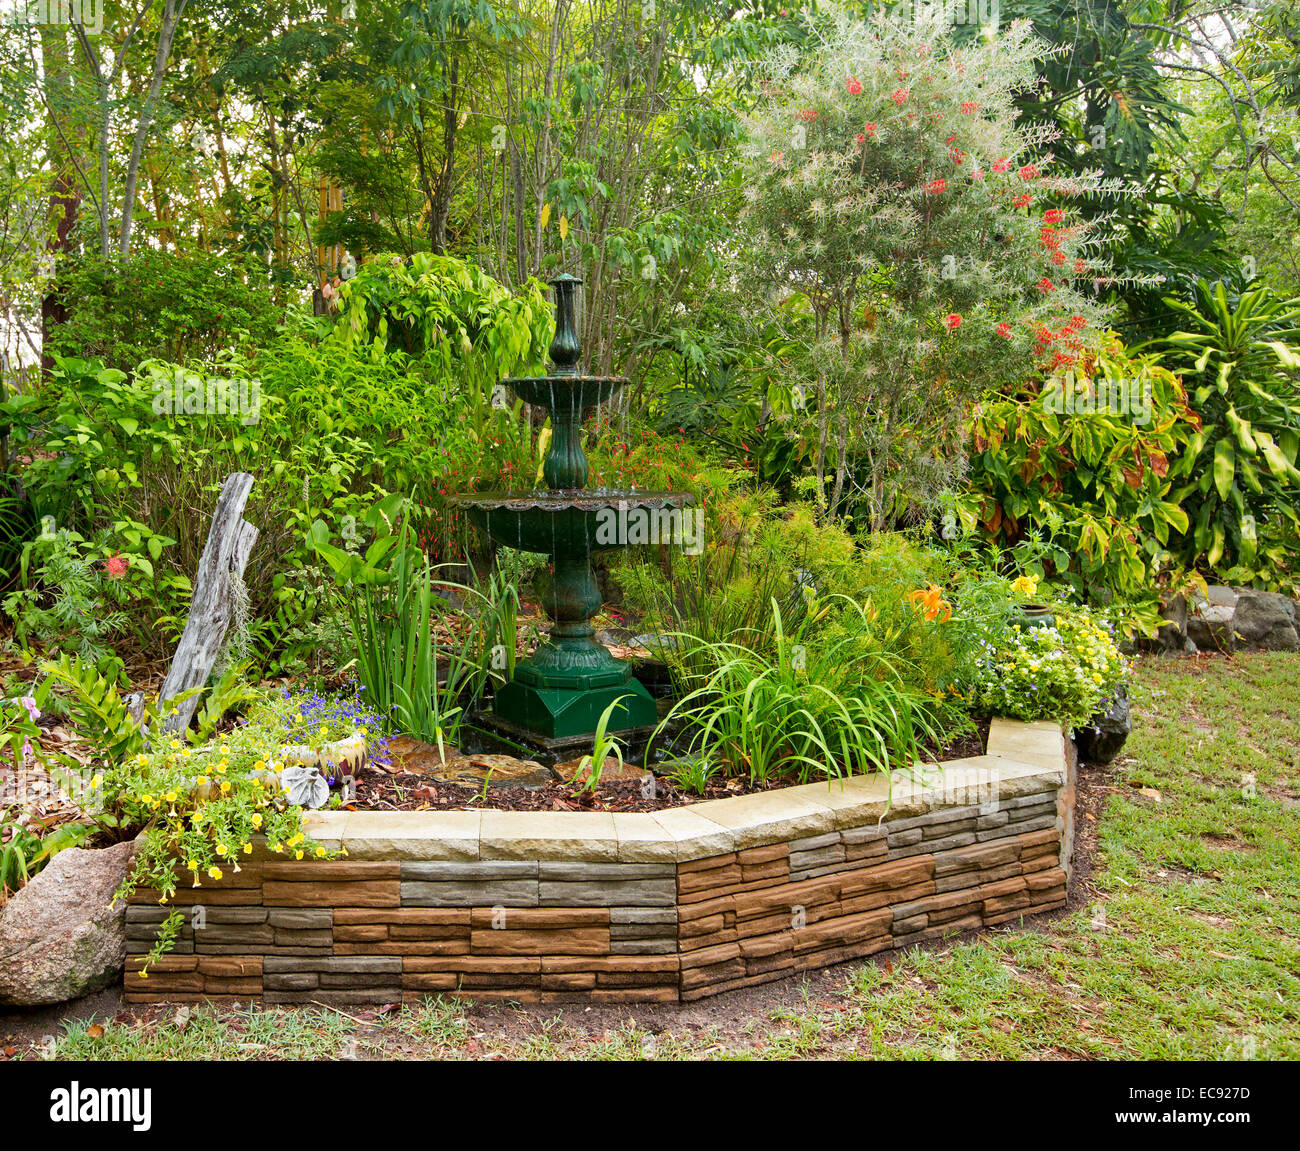 Spectacular Garden Water Feature, Ornate Cast Iron Fountain U0026 Mass Of  Colourful Plants U0026 Flowers Surrounded By Low Stone Wall